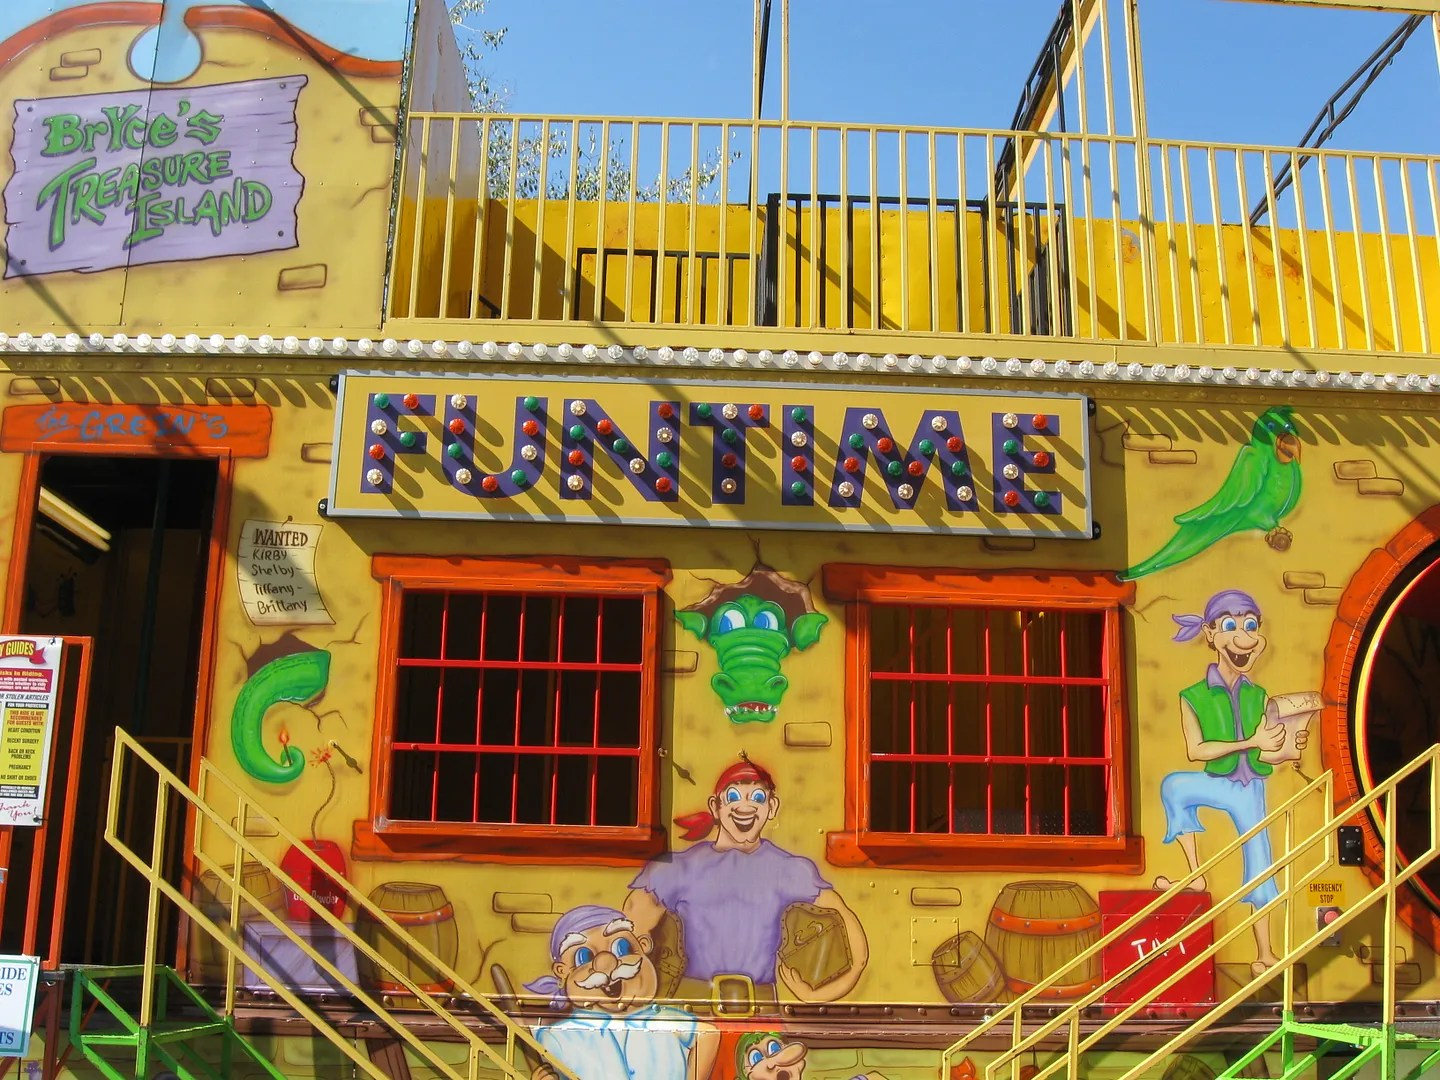 FUNTIME fun house, Fall Foliage Festival, Martinsville, Indiana